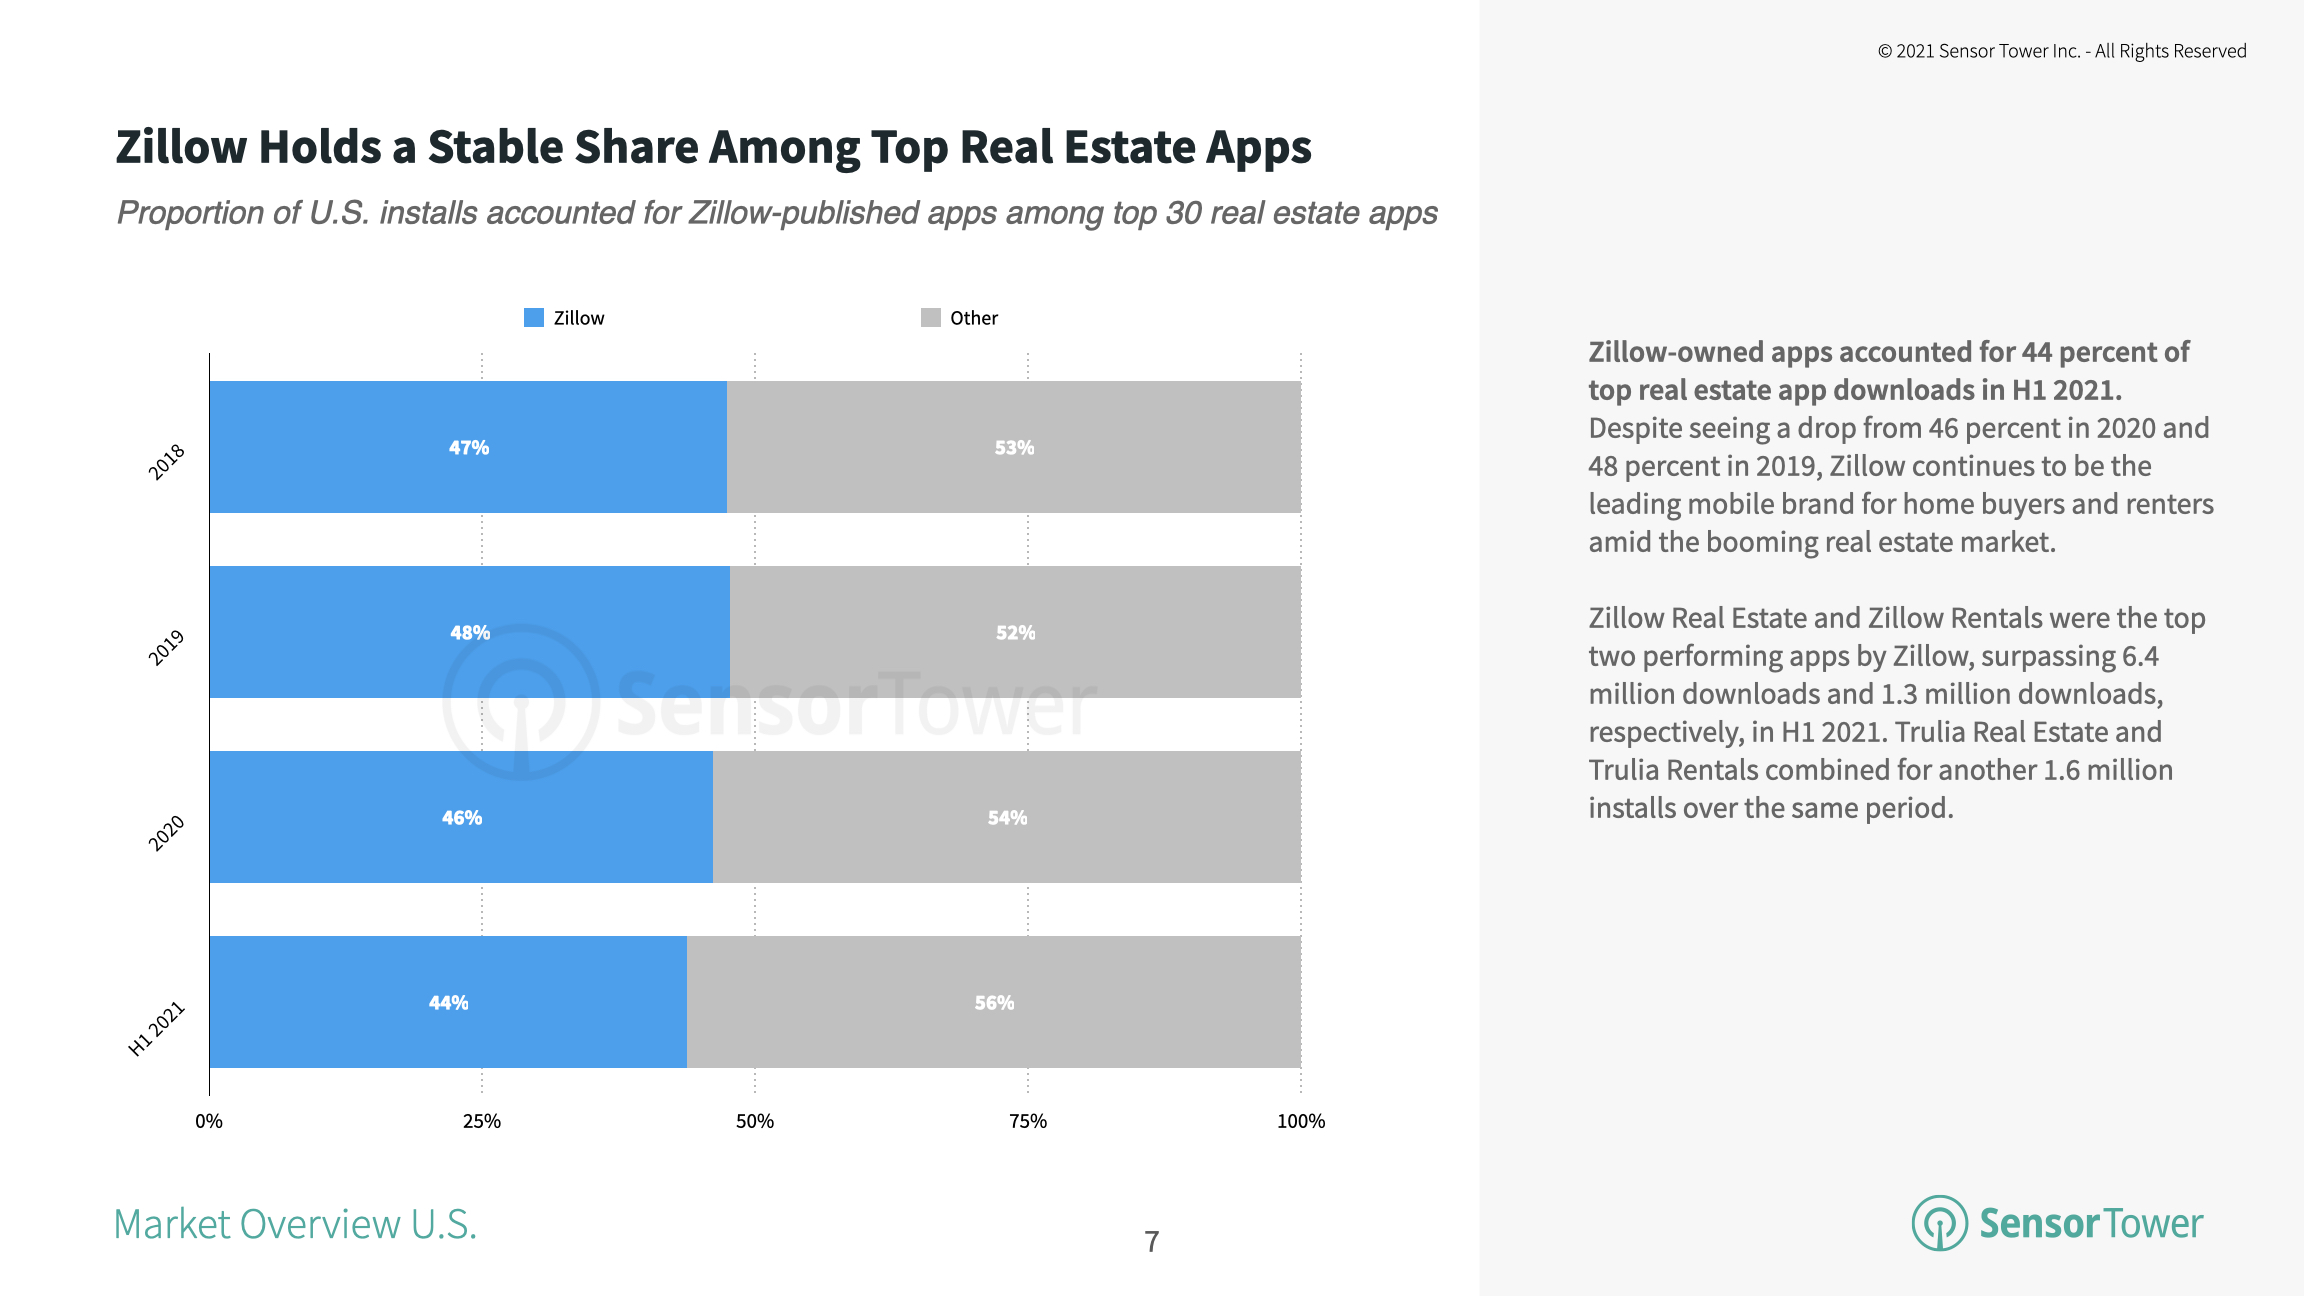 Zillow has maintained a majority share of U.S. installs for the past three years.